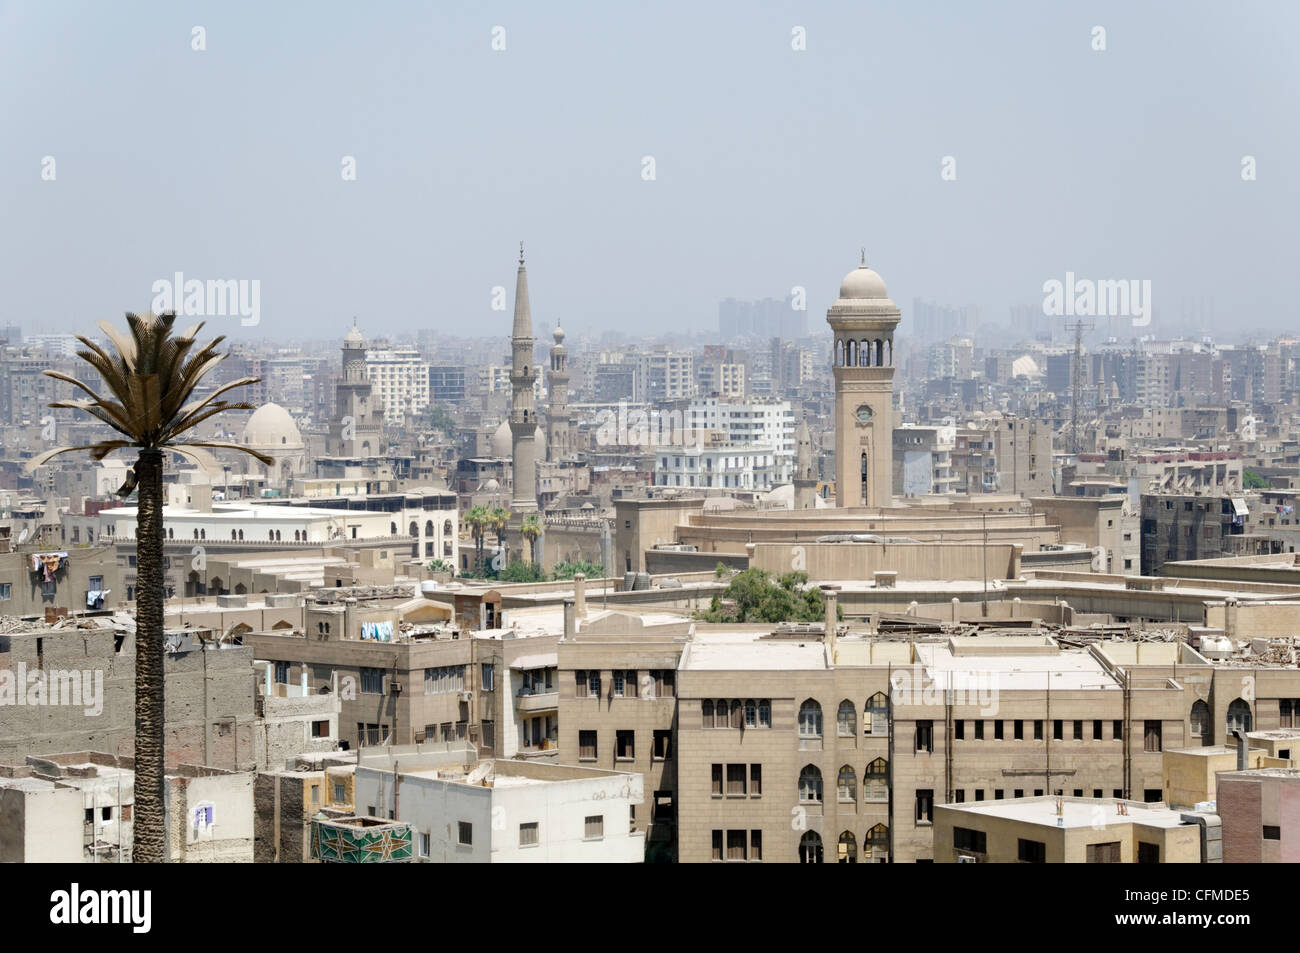 Cairo. Egypt. Panoramic view of Cairo, capital of Egypt and the largest city in Africa and the Arab world. - Stock Image